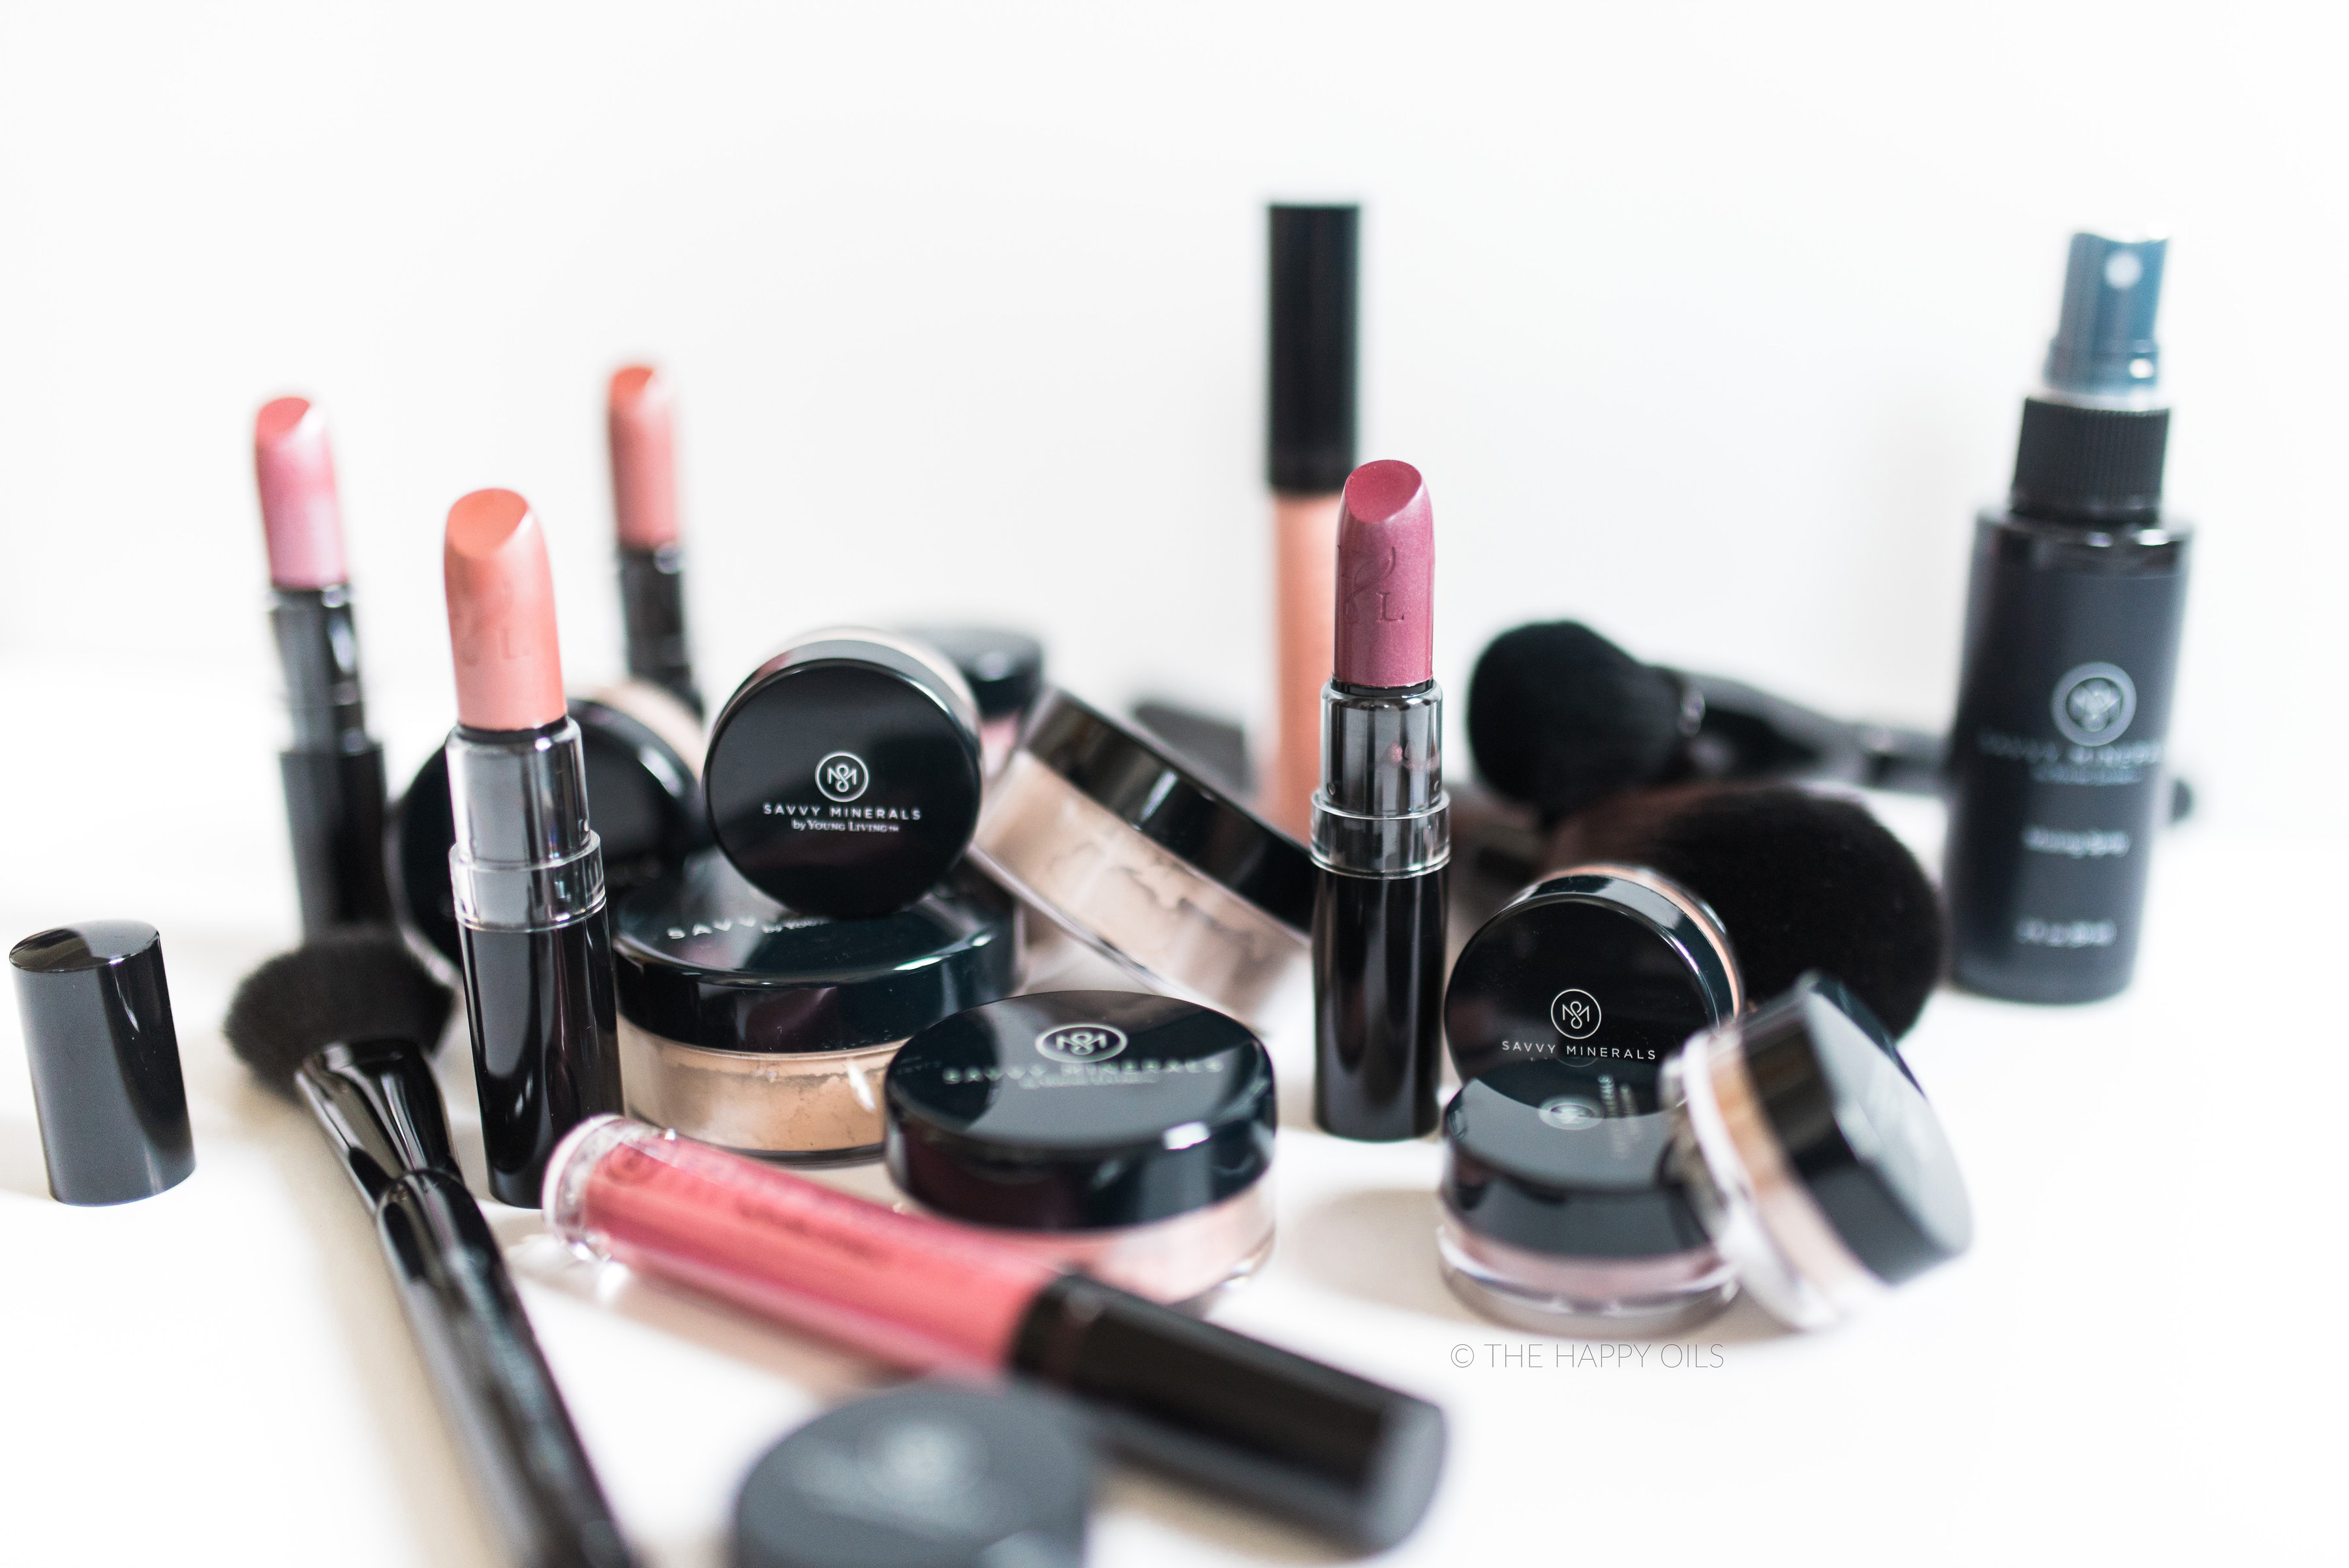 How to Get Started with Savvy Minerals Makeup